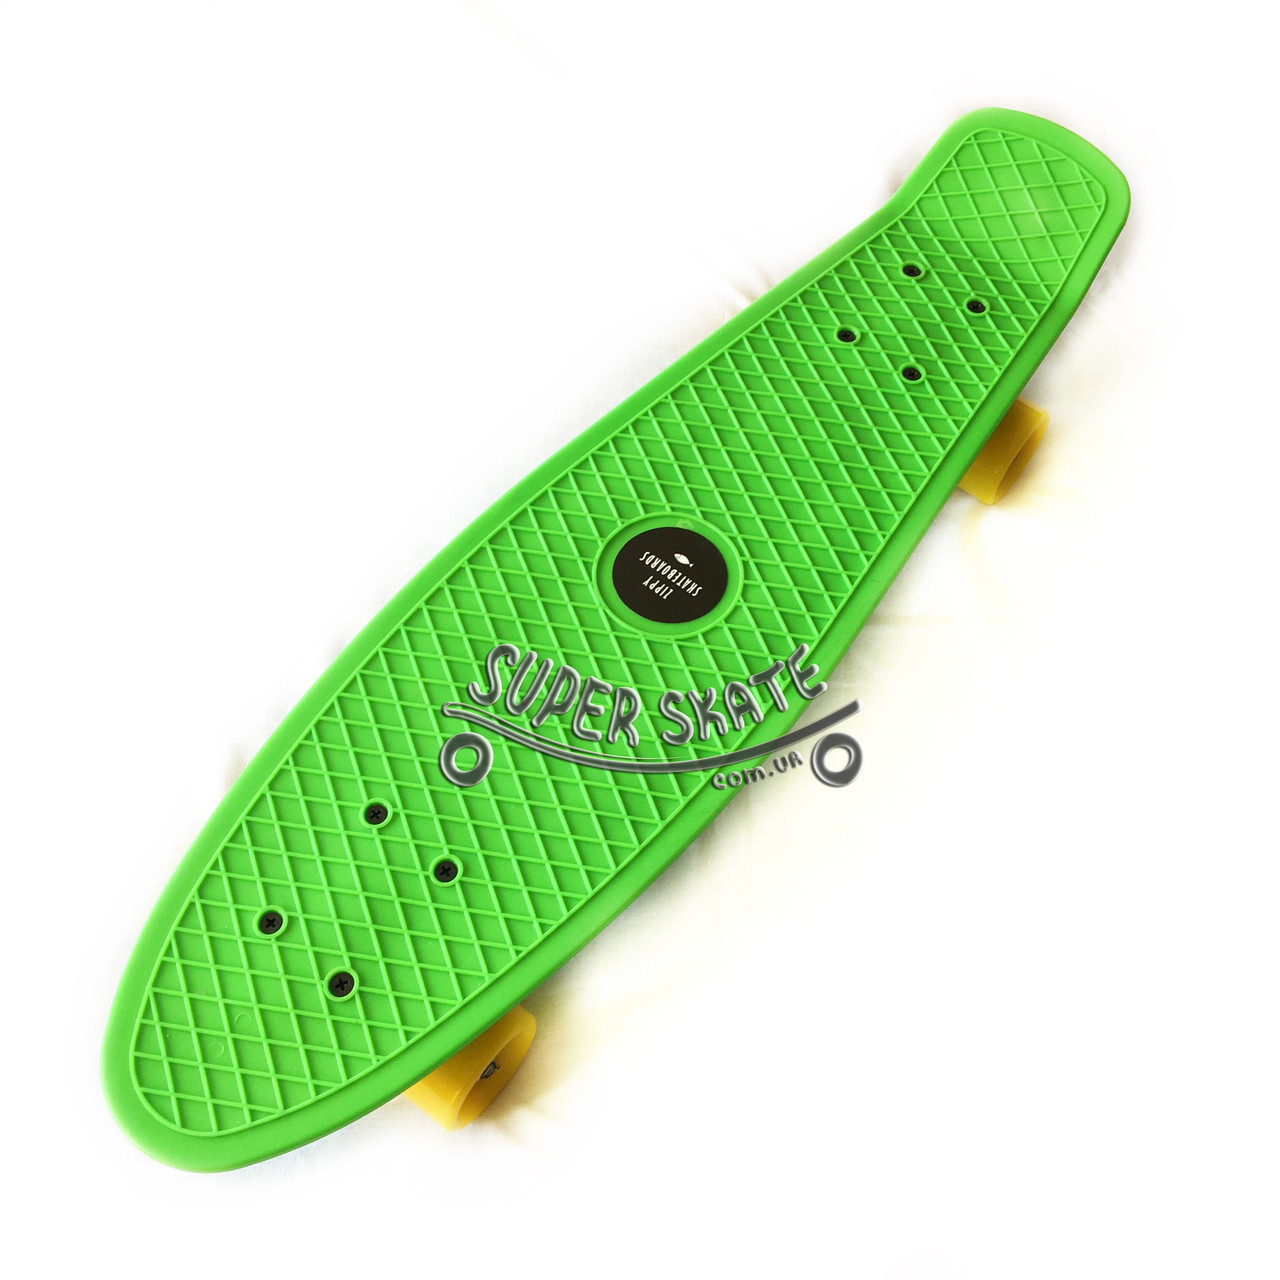 Скейт Пенни борд Penny Board Nickel 27 Green - Салатовий 68 см пенни борд никель